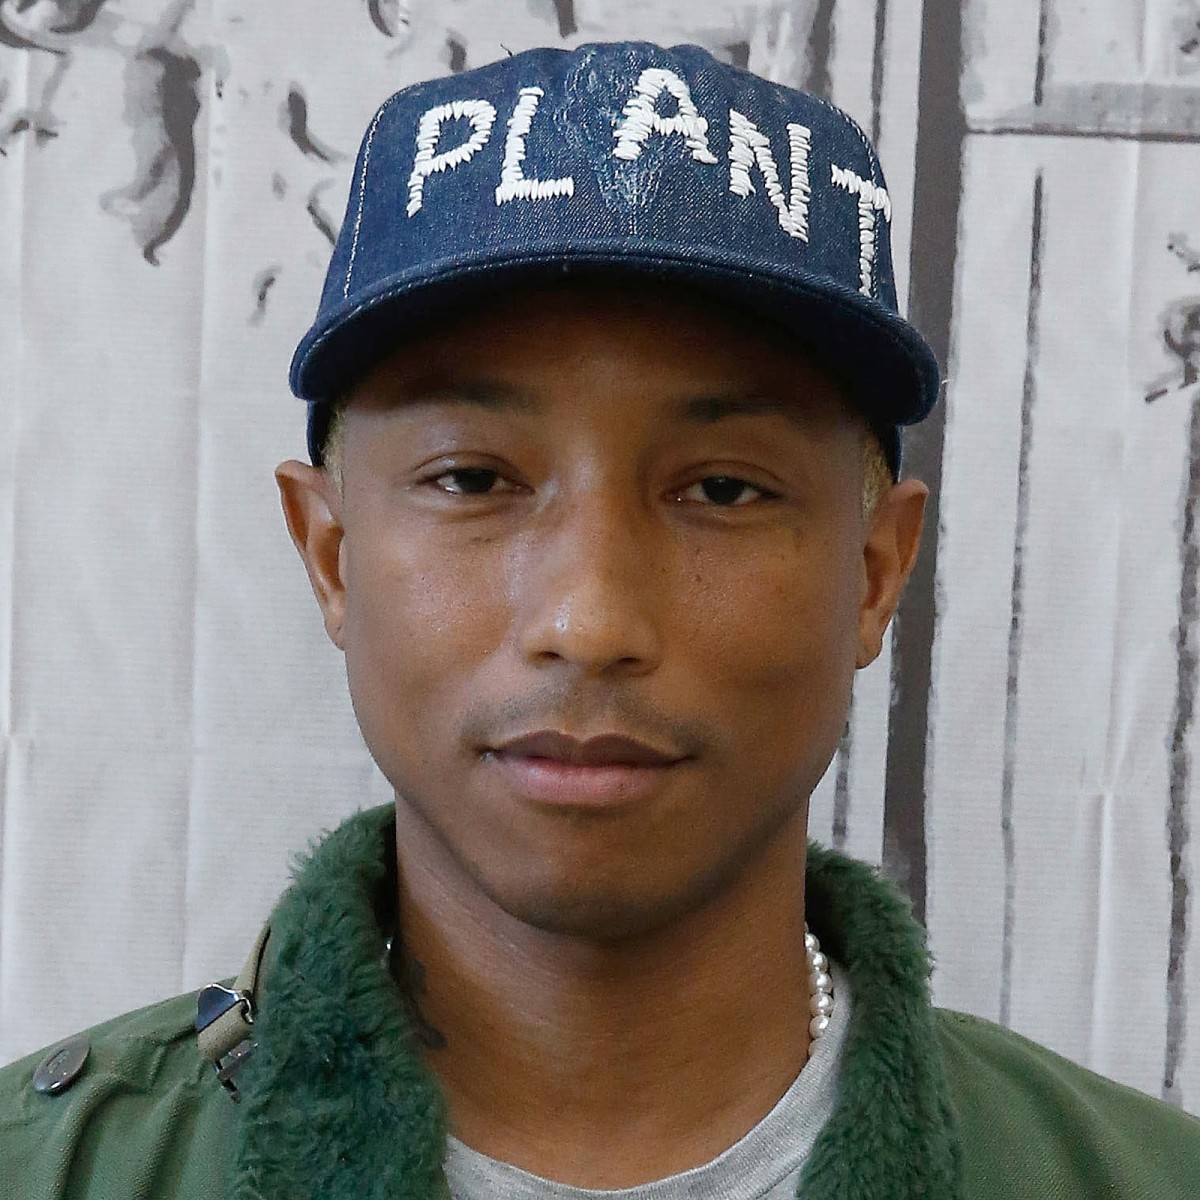 Pharrell Williams photo via Getty Images